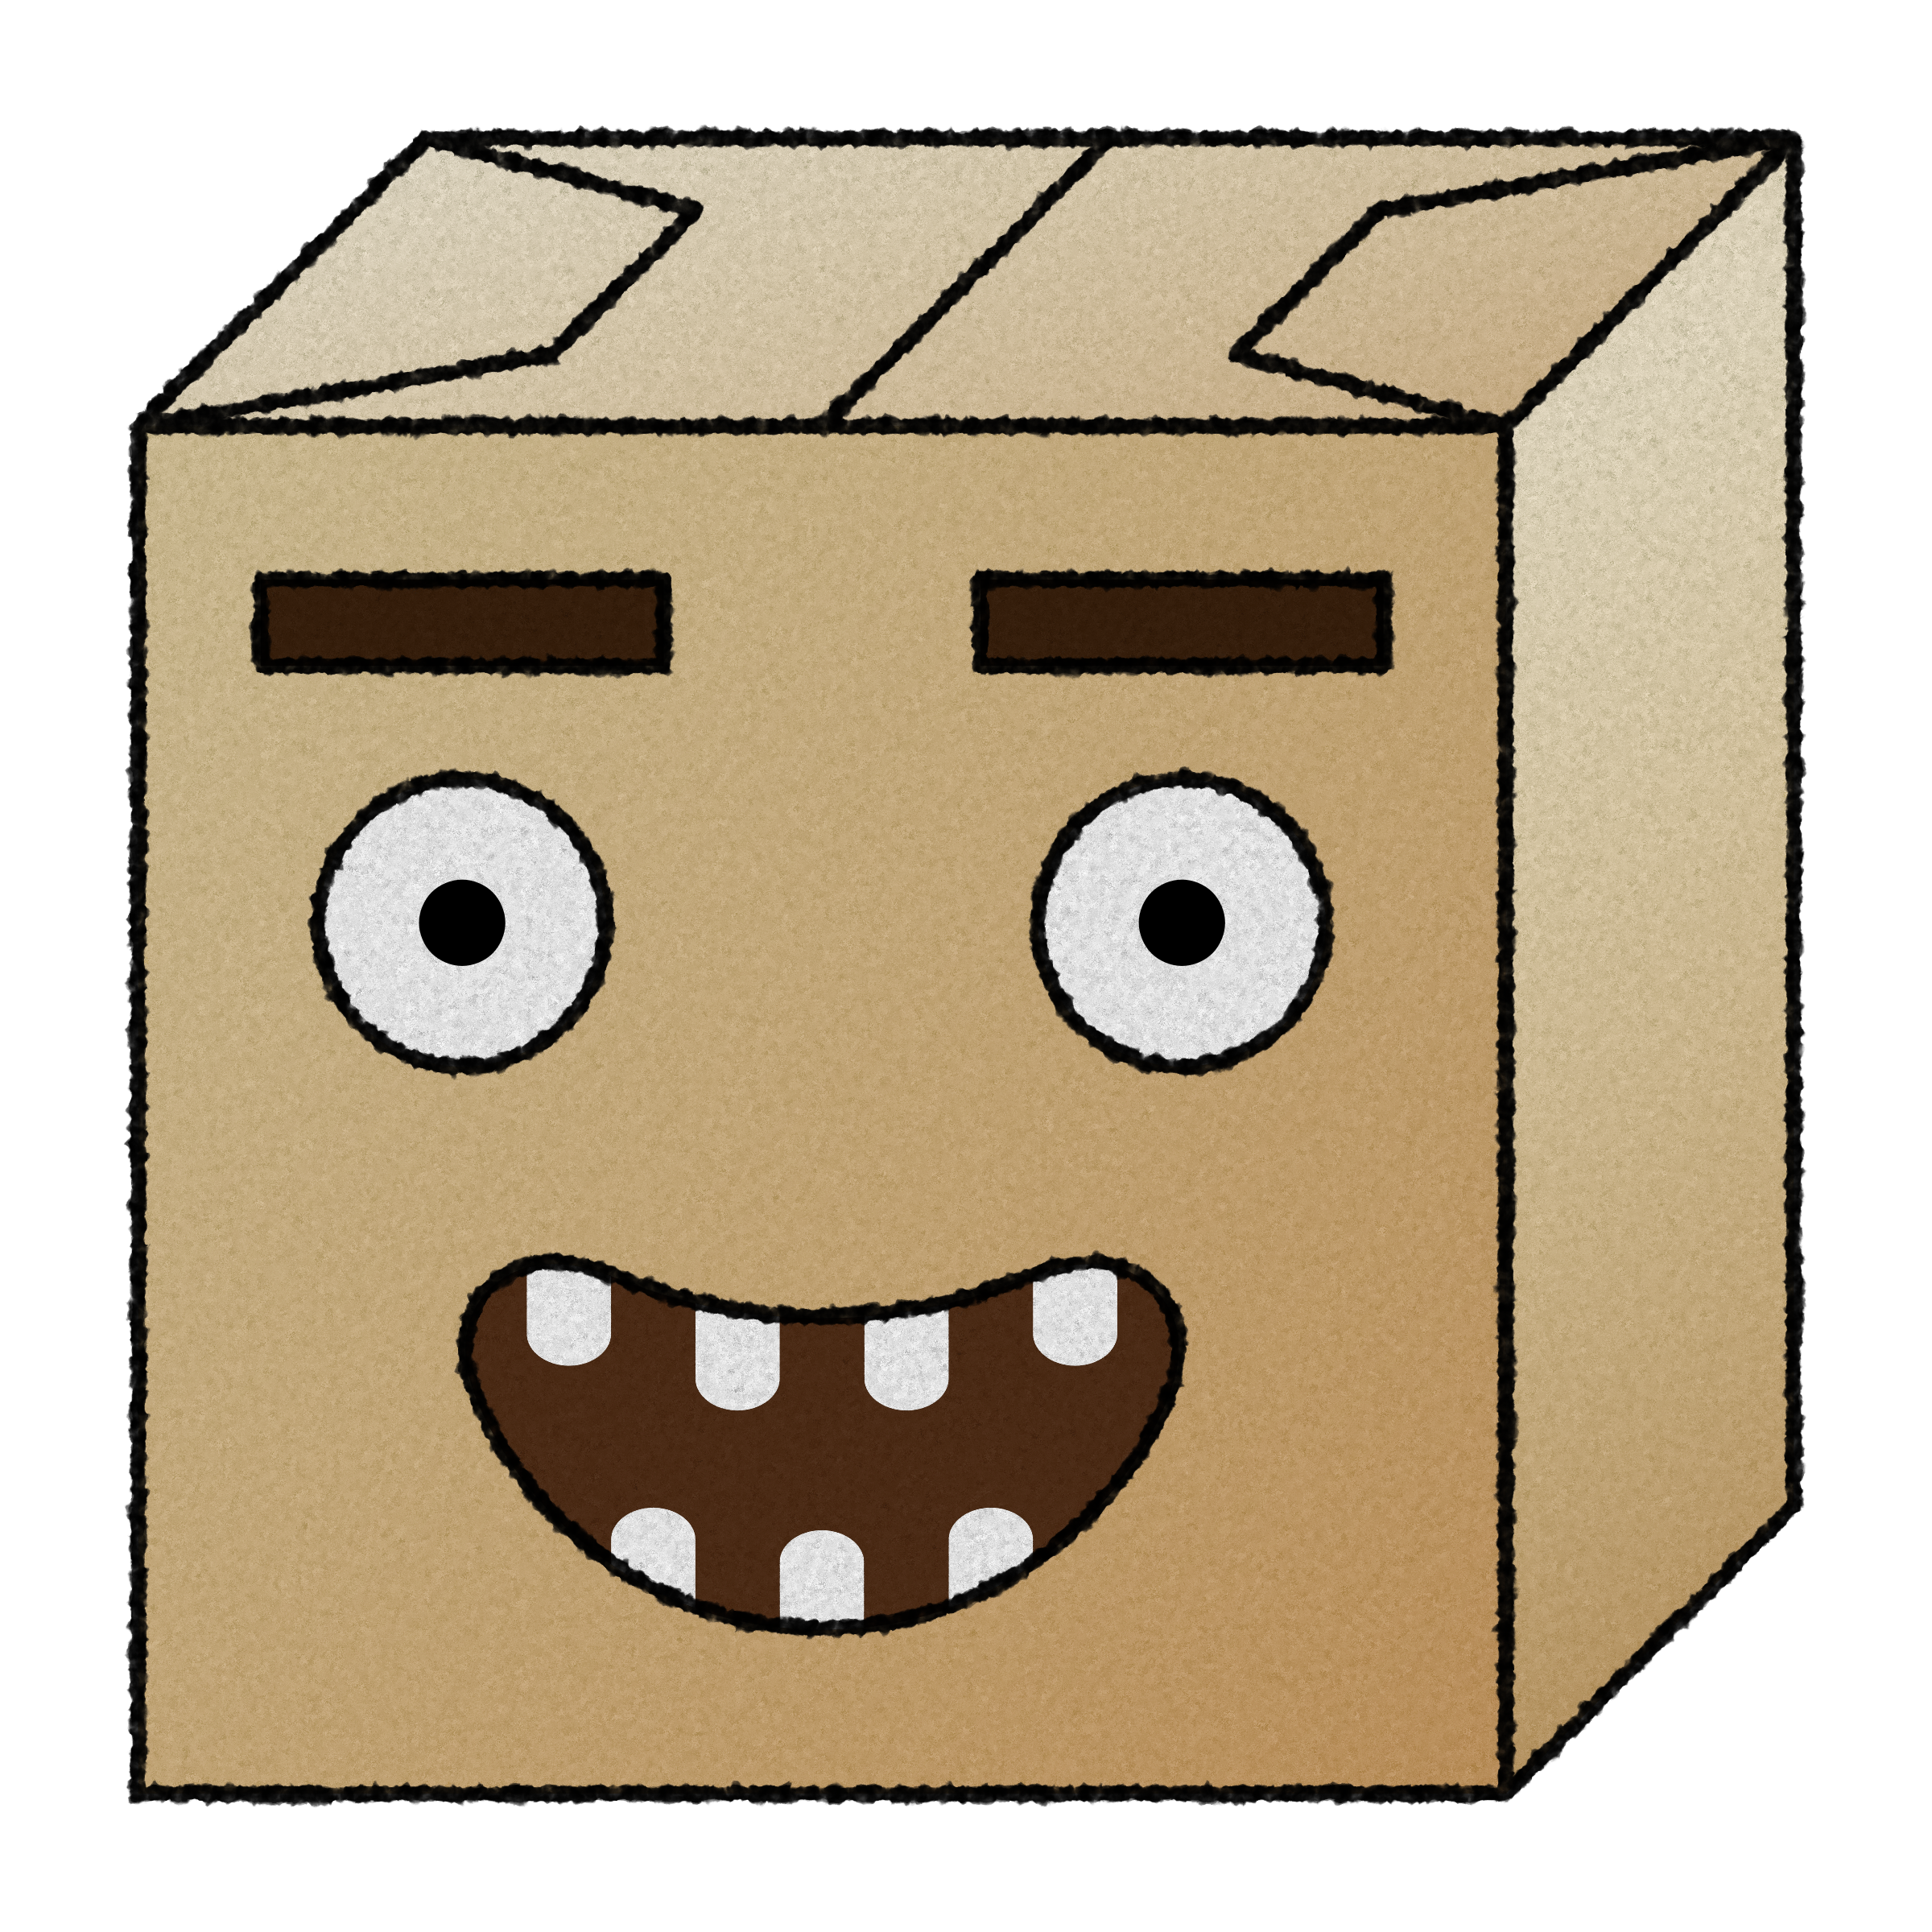 paper box head 4 by Lazur URH